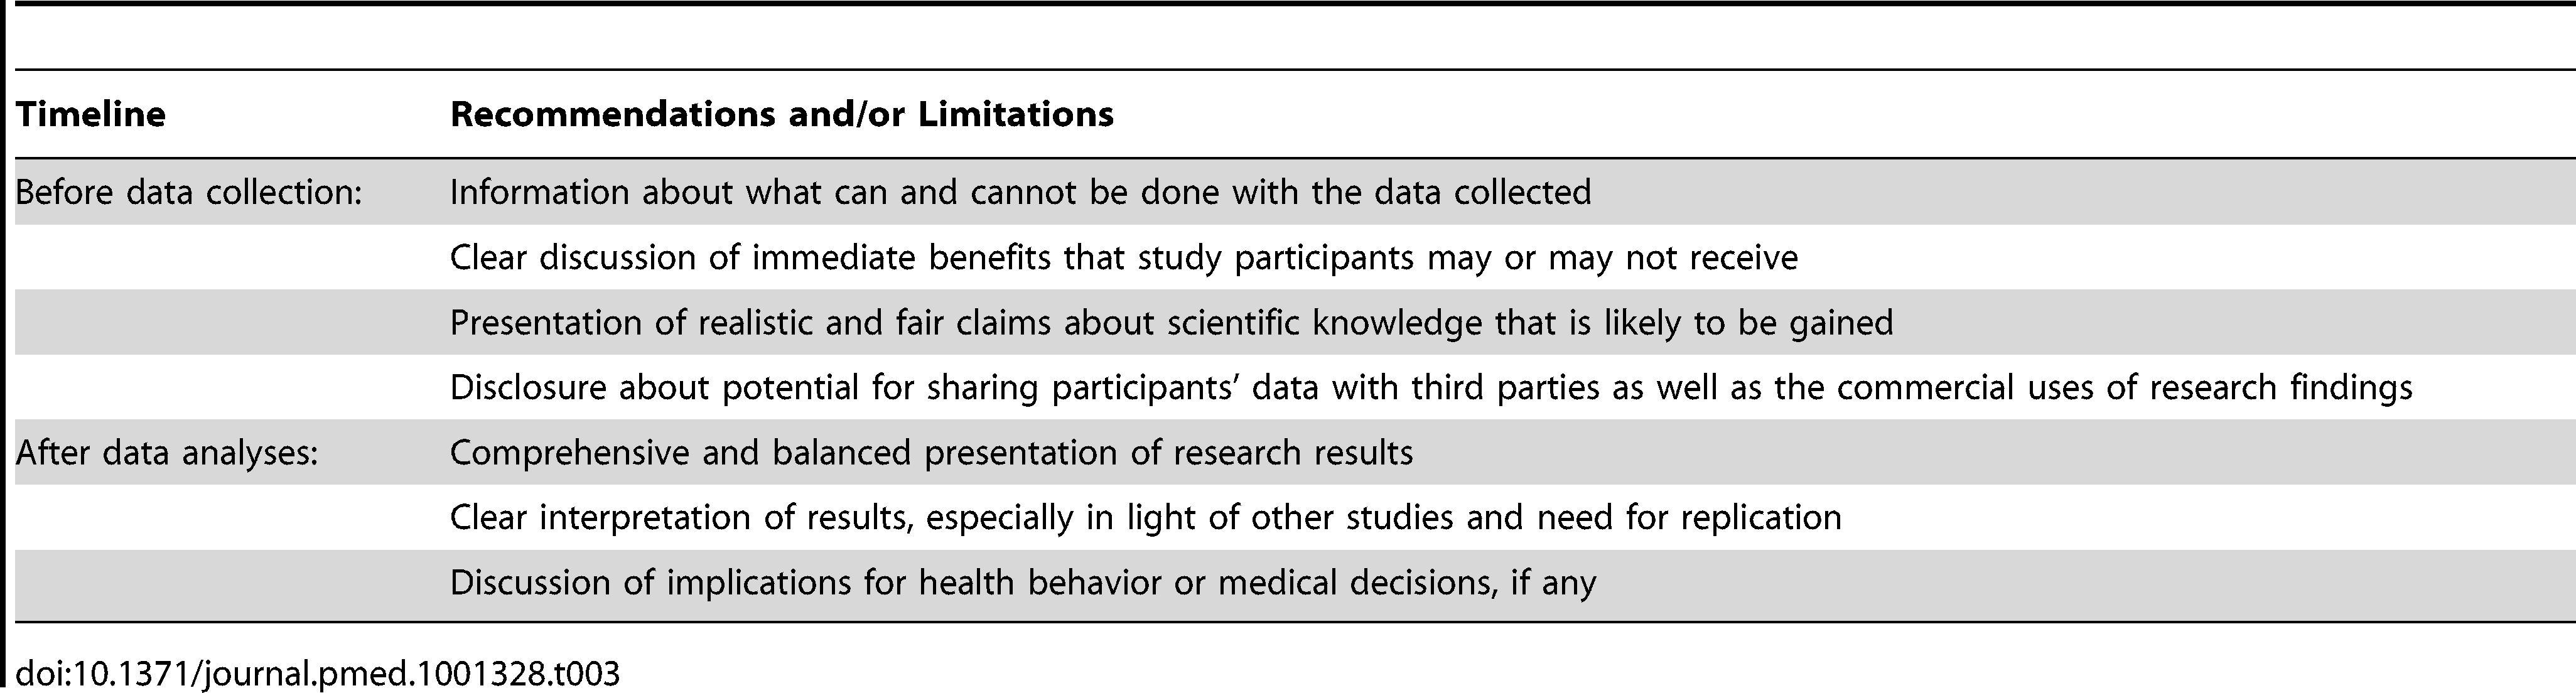 Recommendations for communicating opportunities and limitations of research conducted using data obtained through online communities.